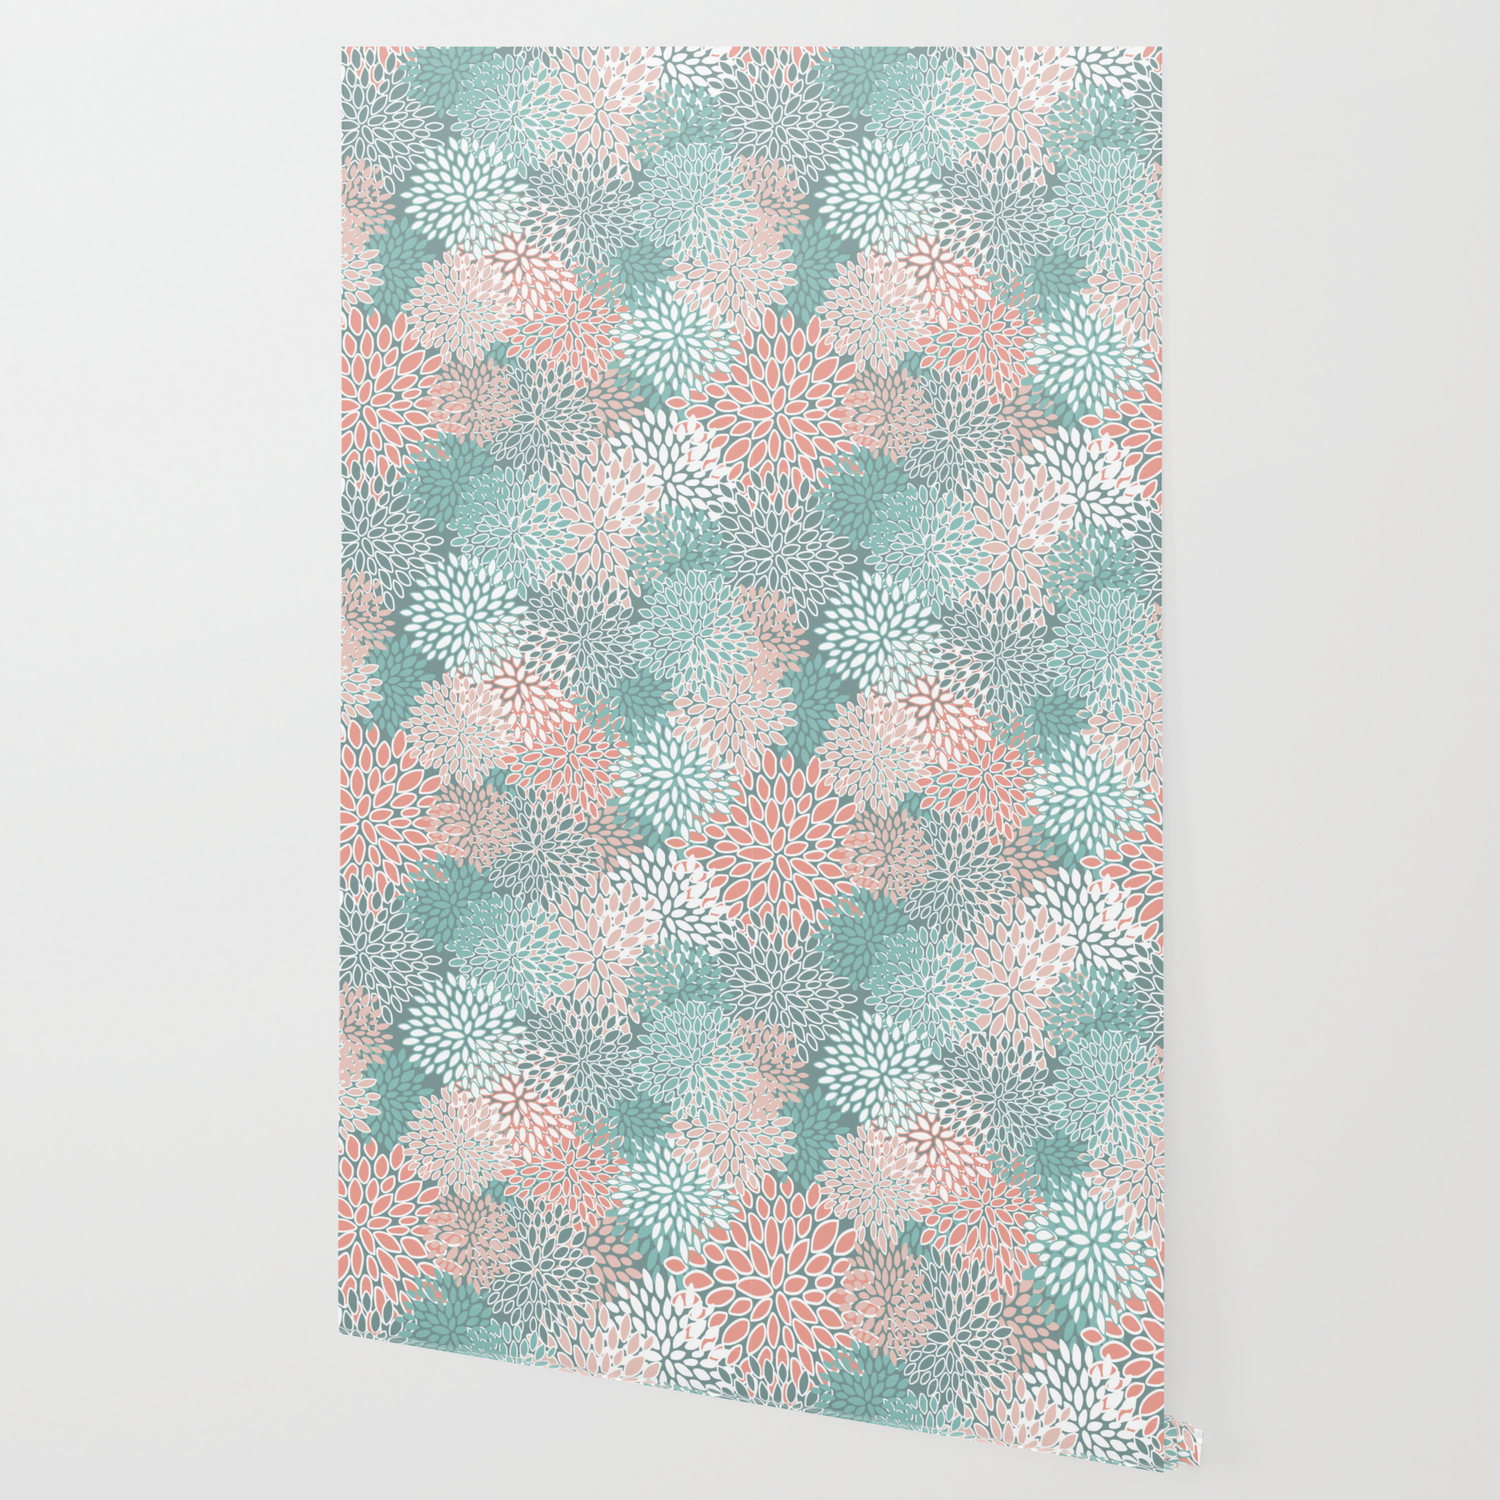 Teal And Coral Floral Pattern Wallpaper By Meganmorrisart Society6